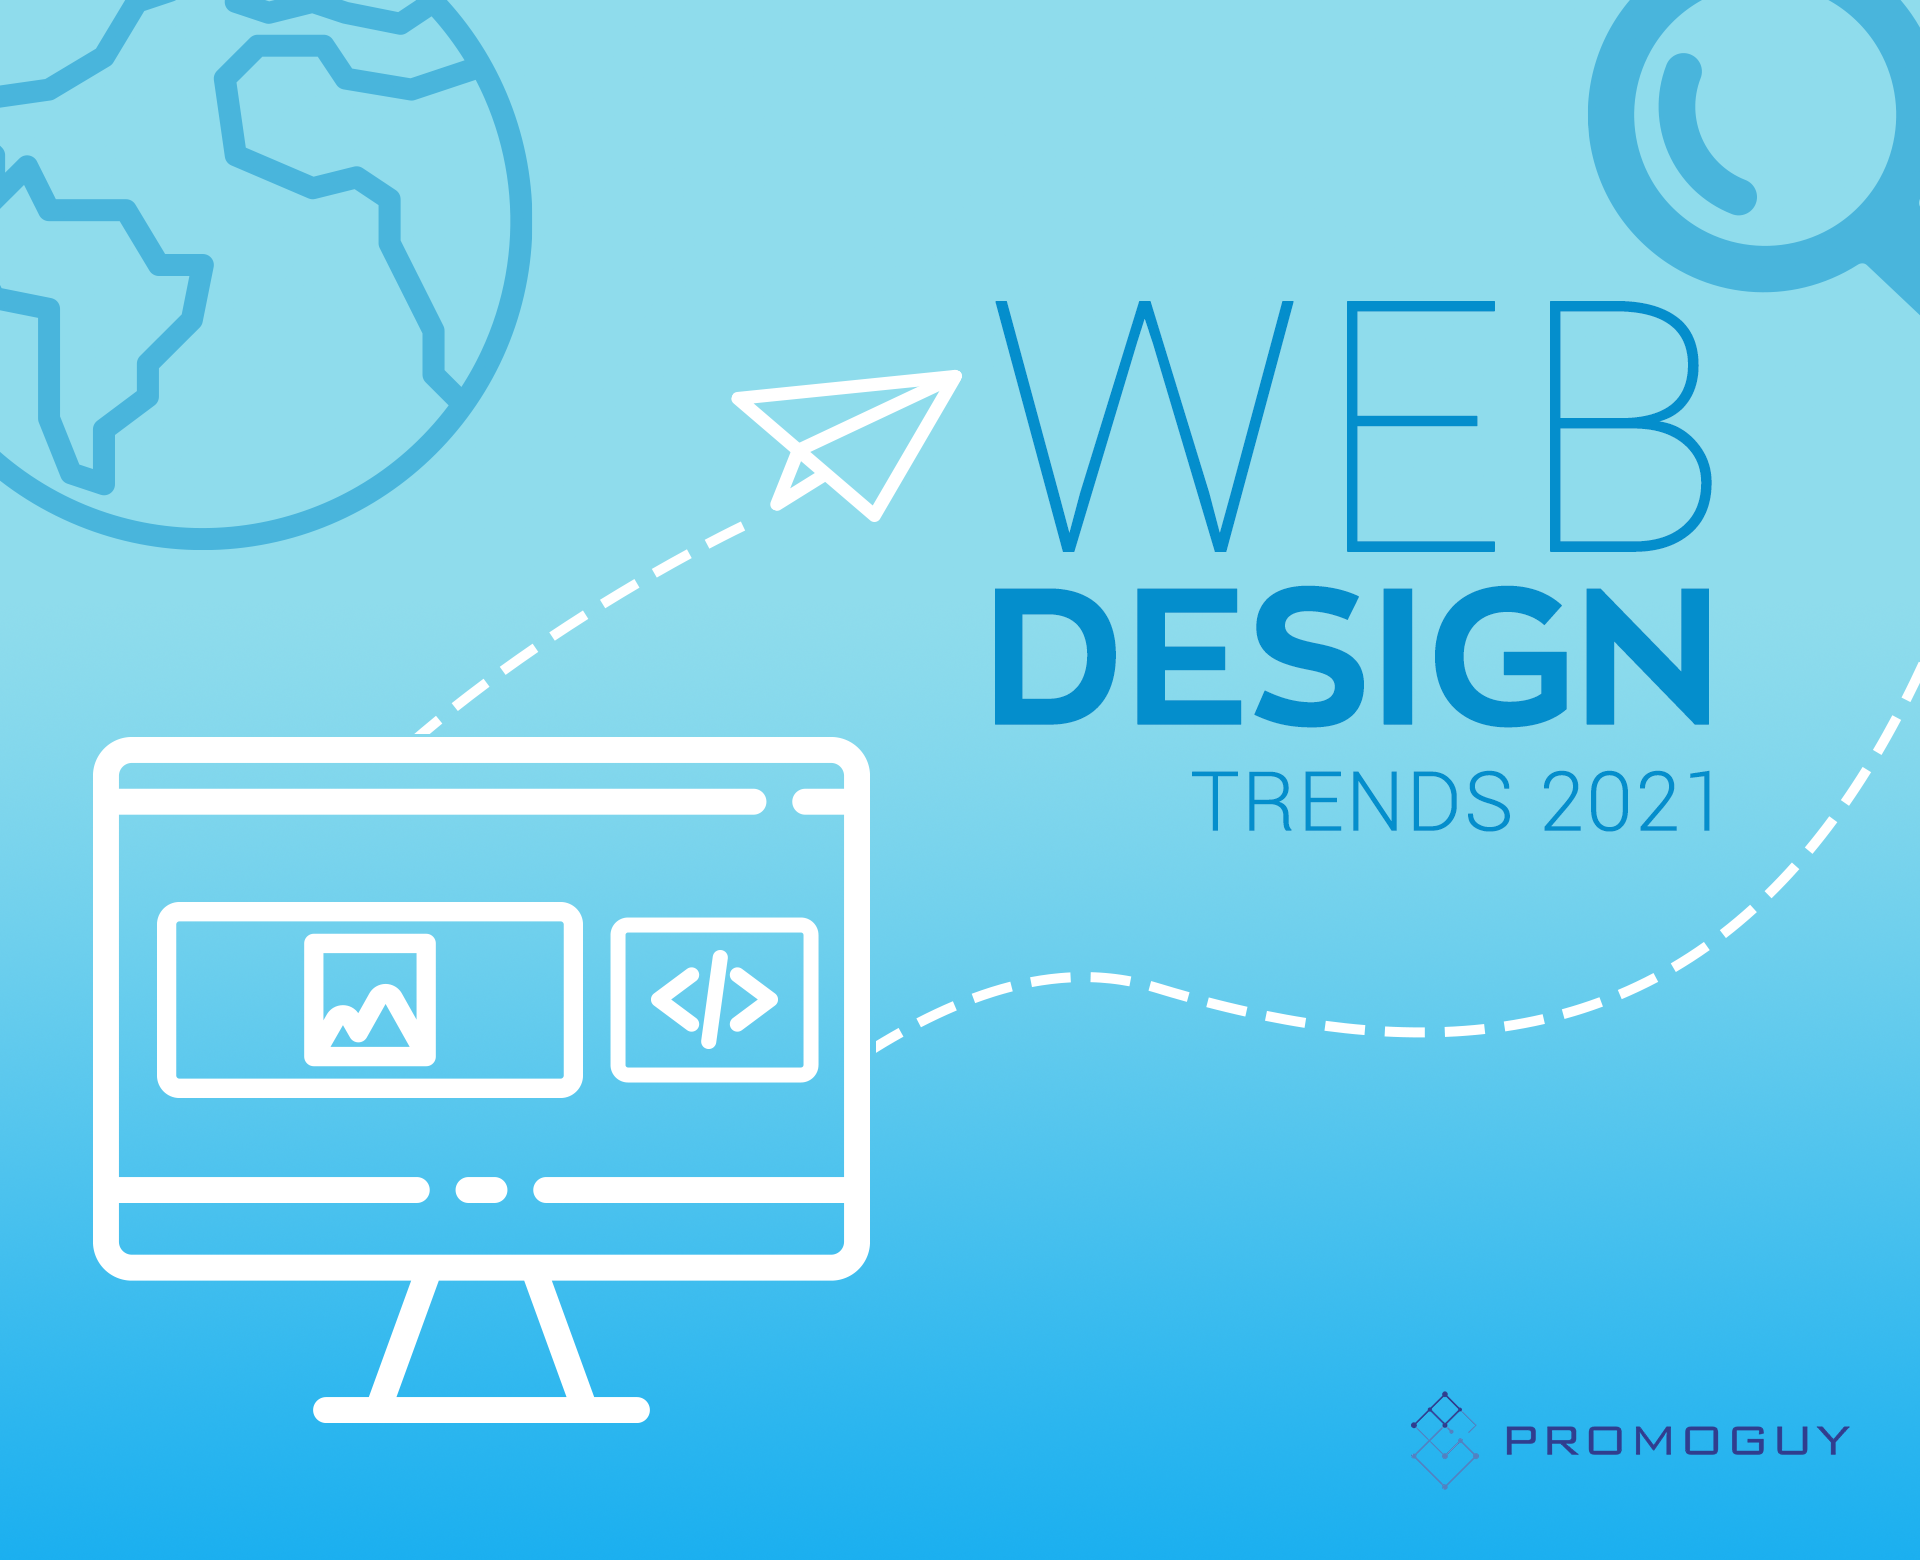 Web Design Trends For Sprucing Up Your Site in 2021